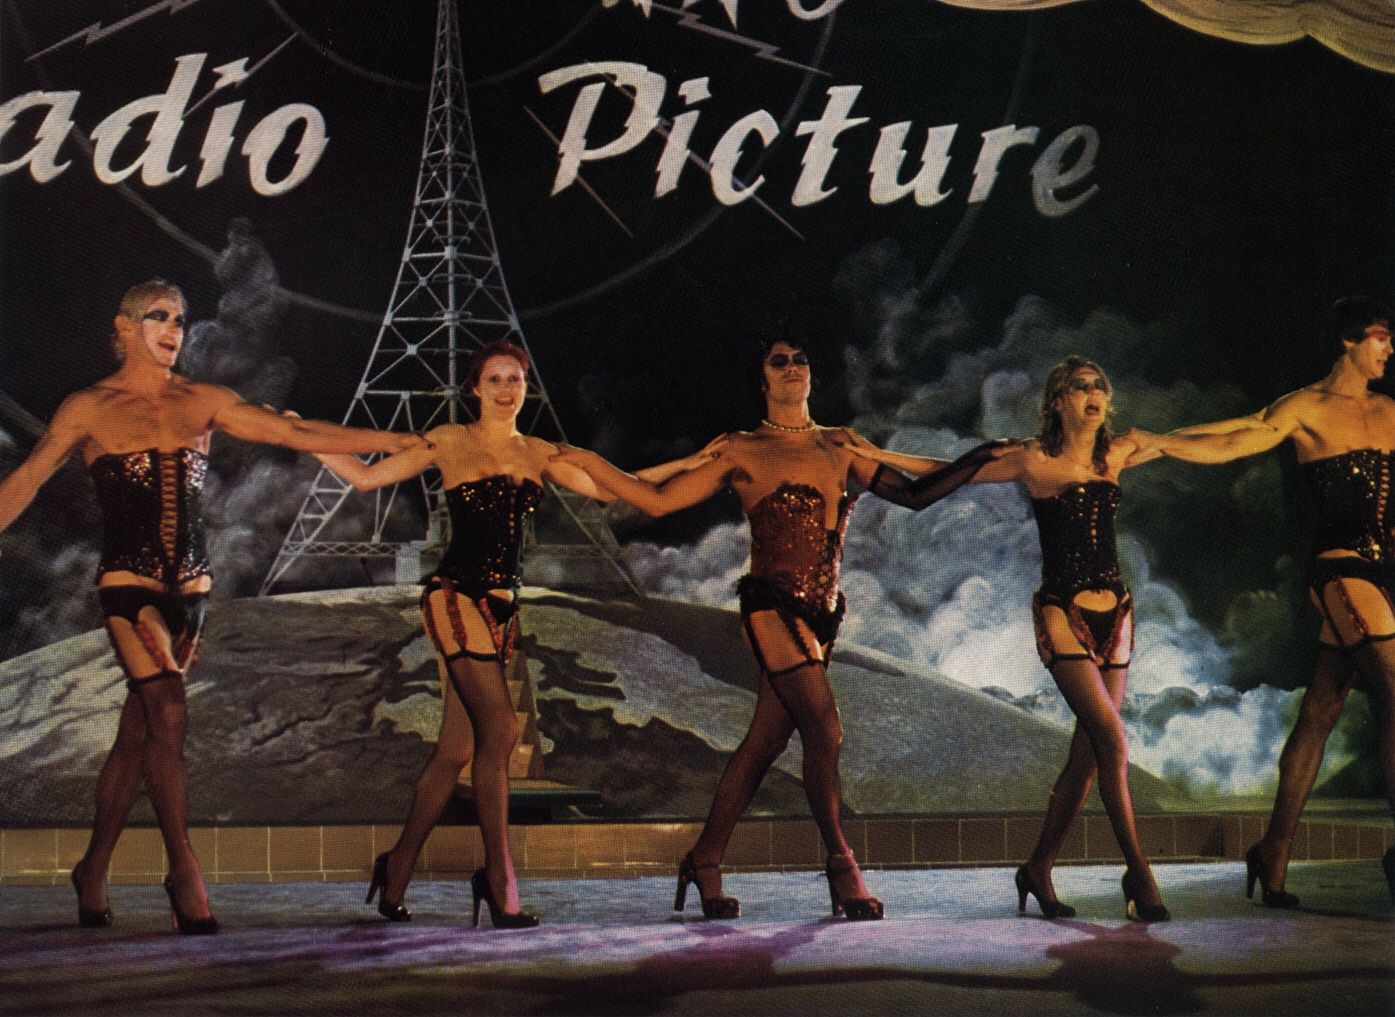 Image from Rocky Horror, showing the main characters dancing a chorus line in stockings and suspenders